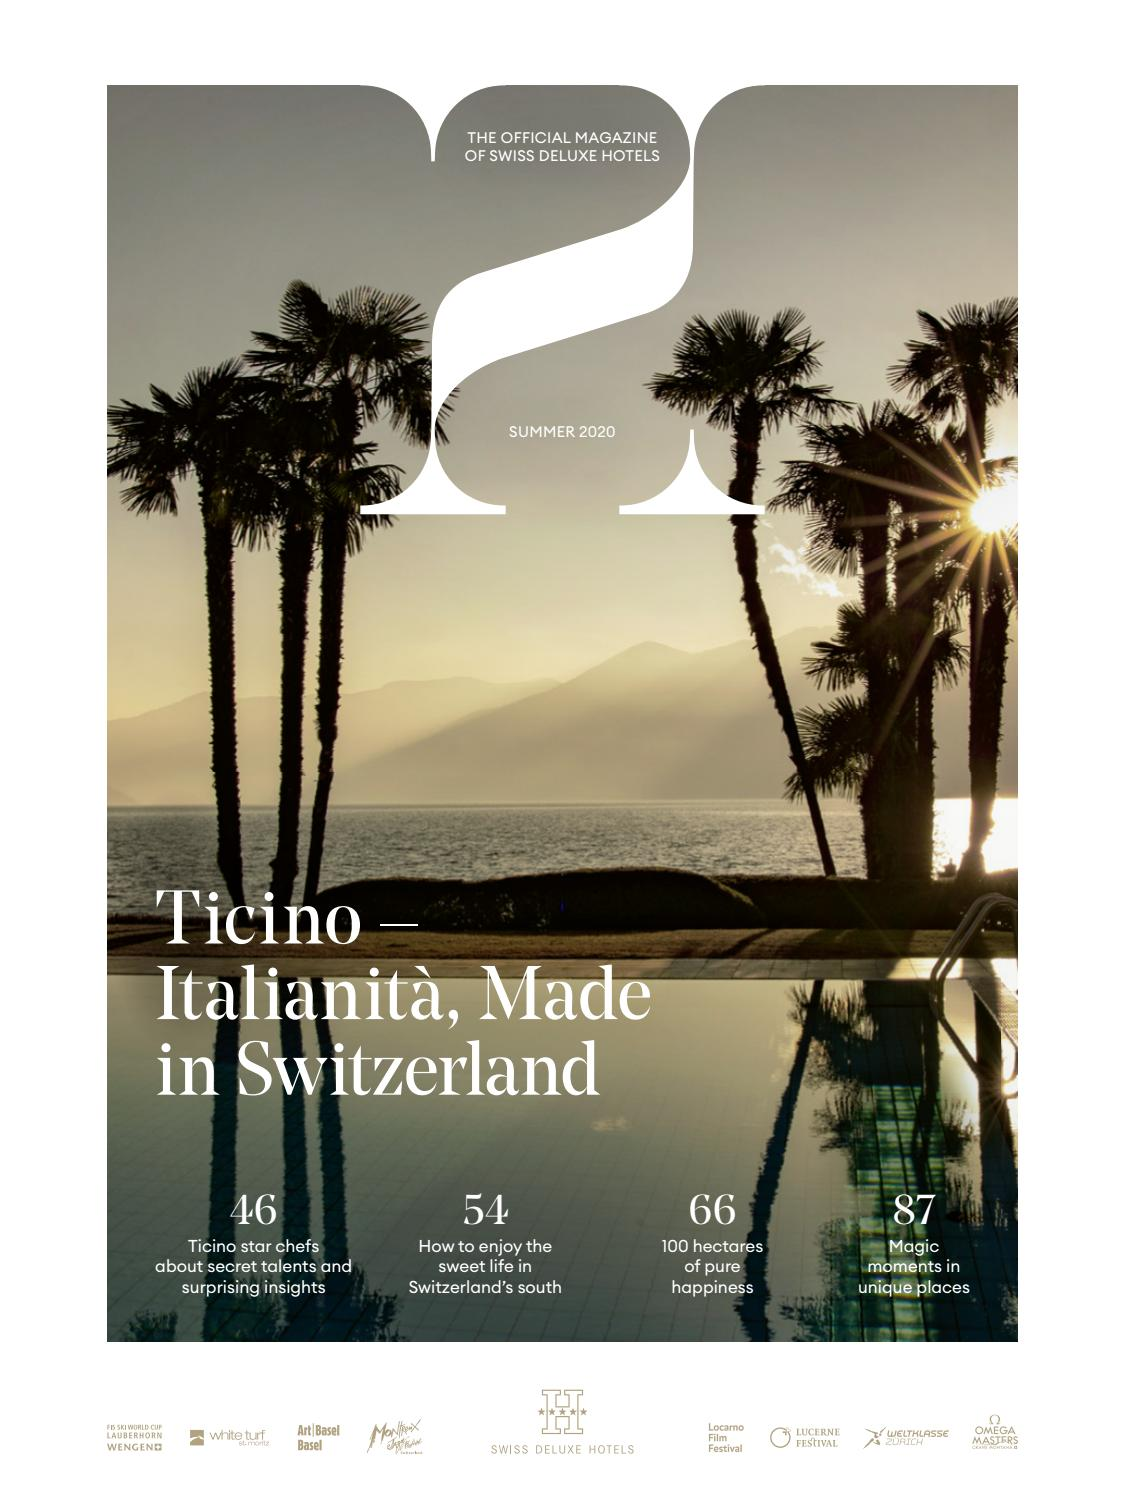 H Magazine Summer 2020 By Swiss Deluxe Hotels Issuu